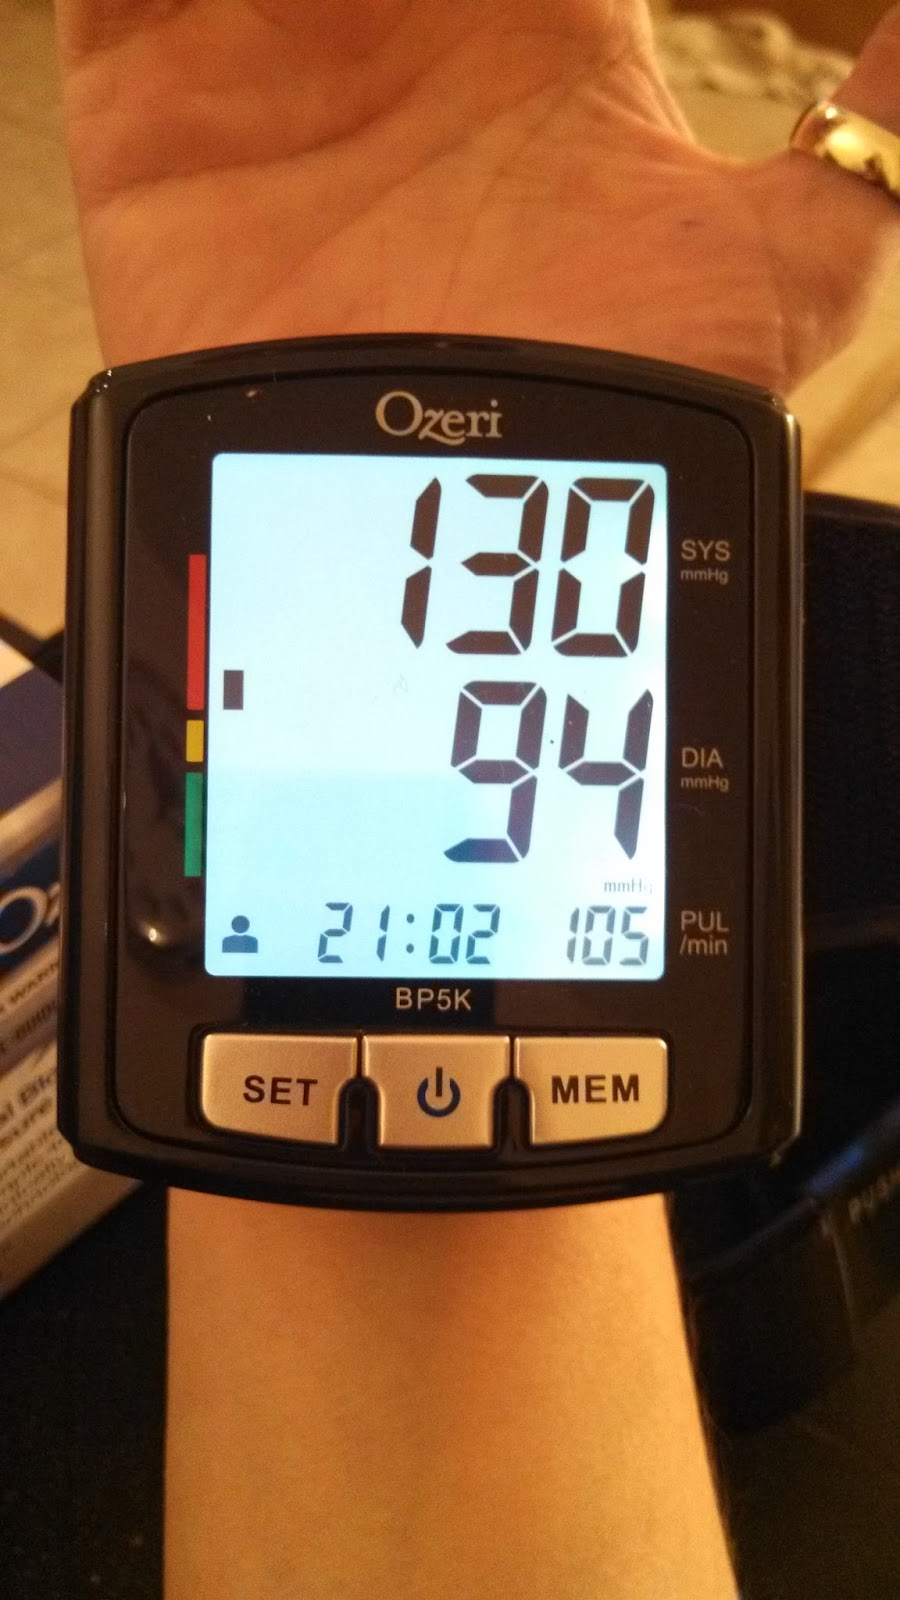 Ozeri digital blood pressure monitor